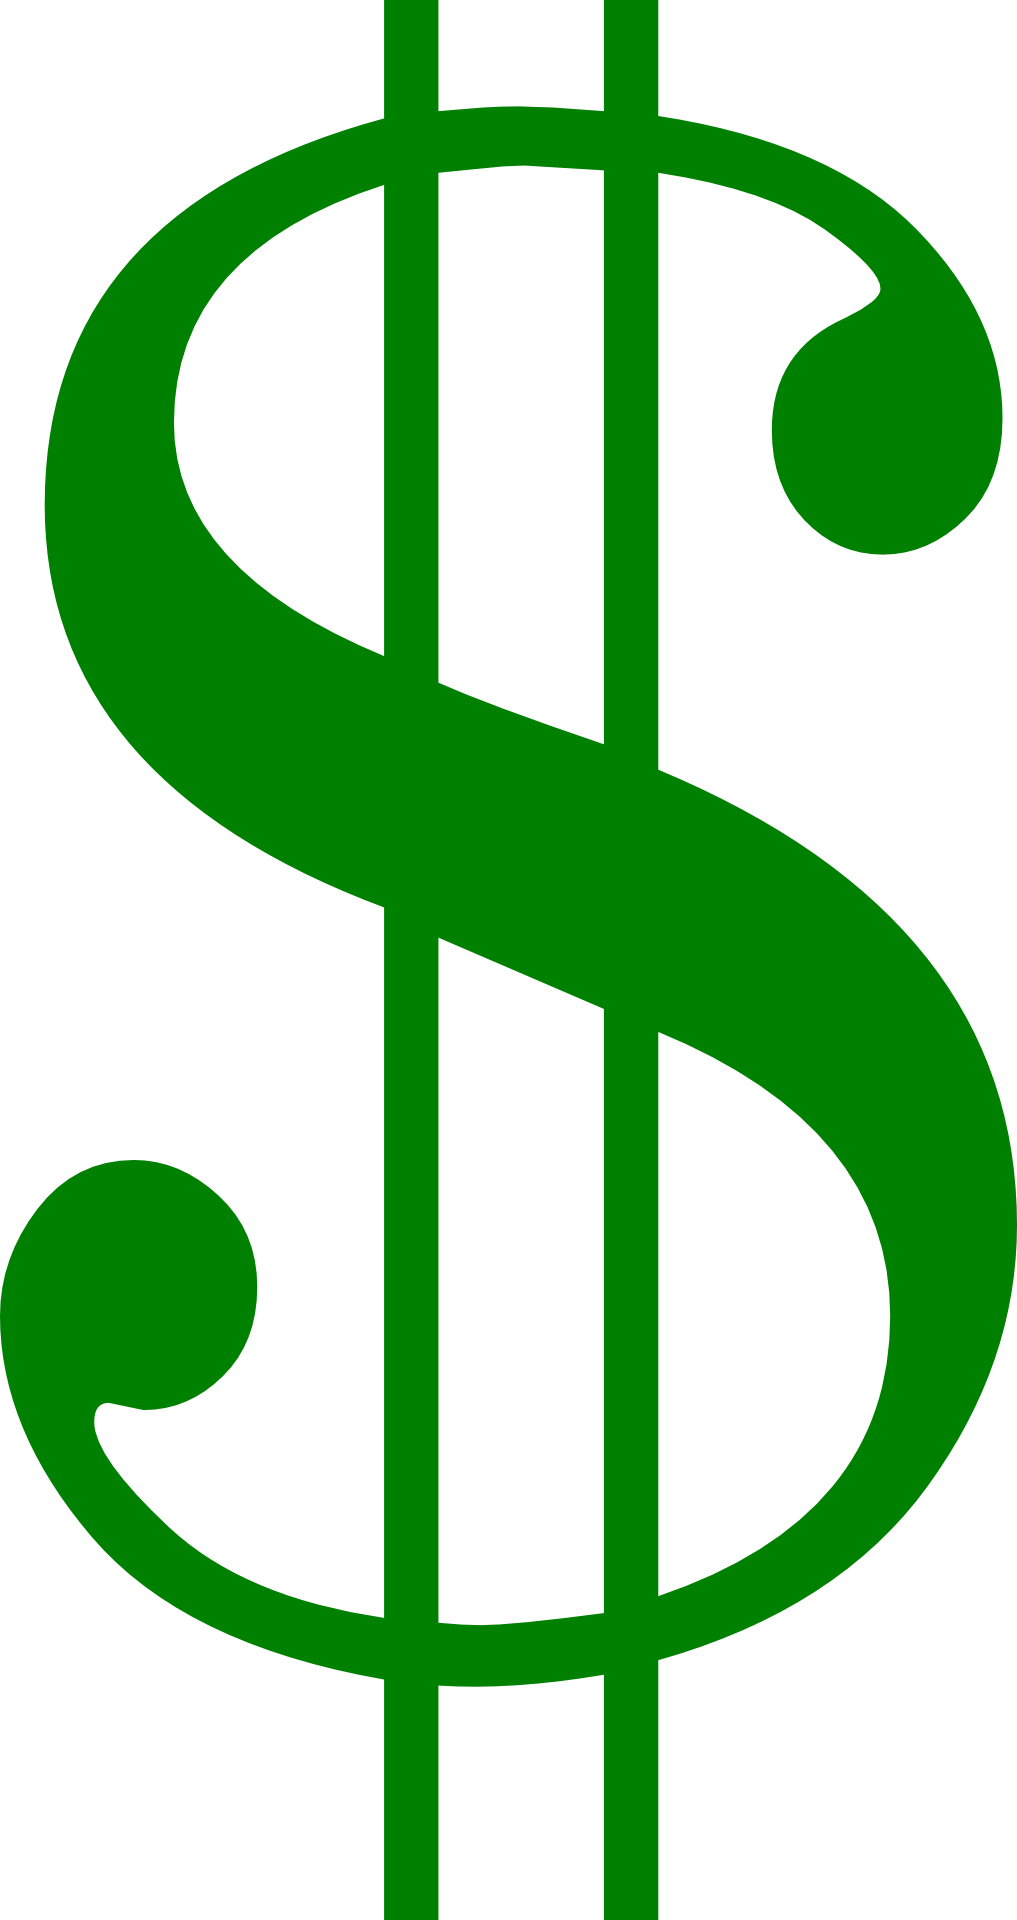 Dollar sign clip art png. United states currency symbol